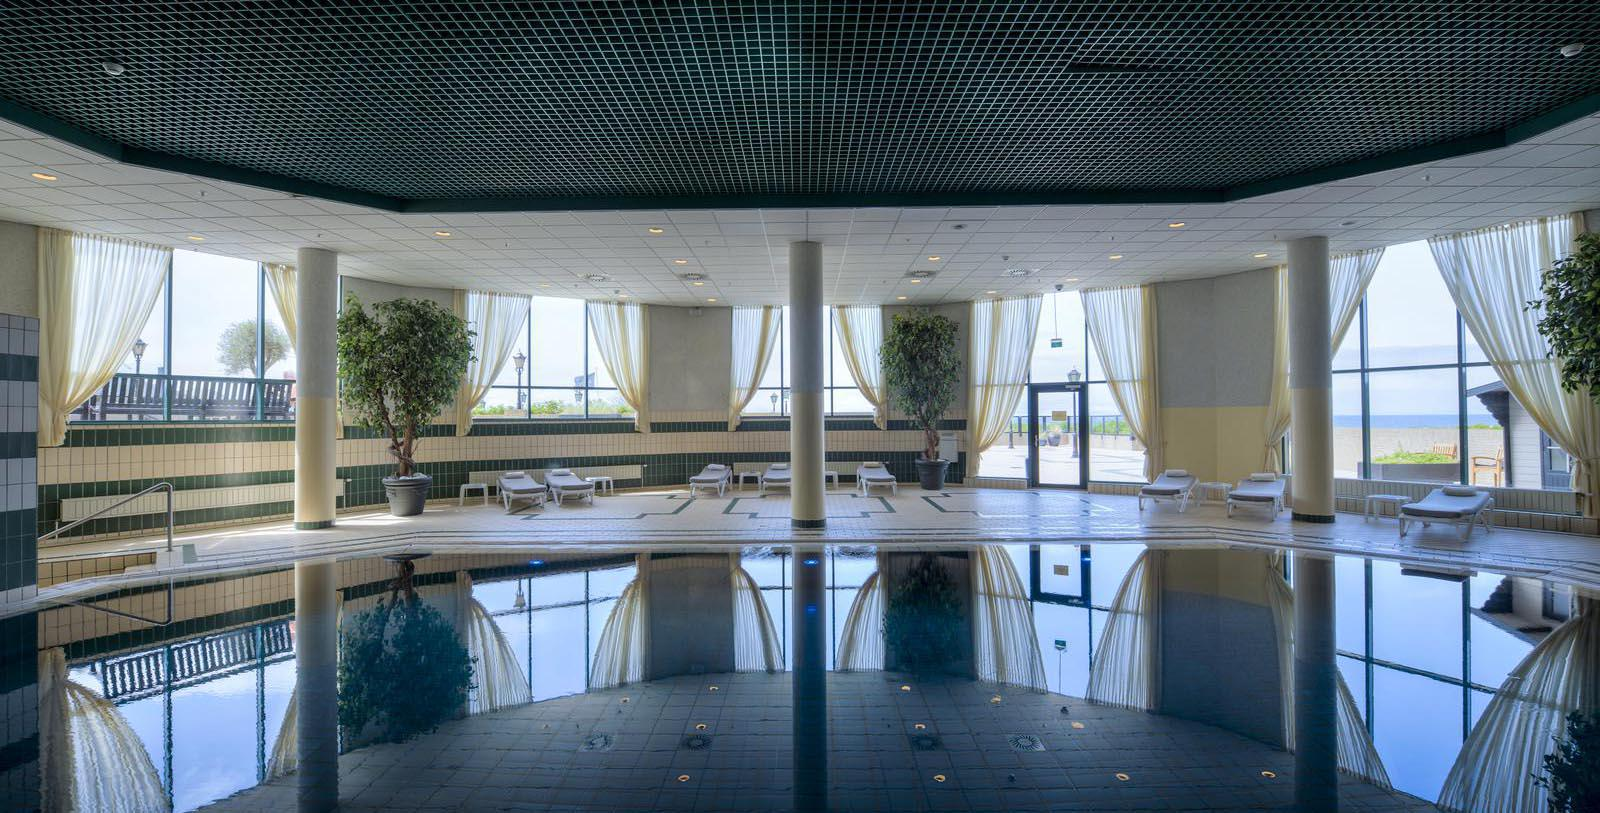 Image of Indoor Pool, Grand Hotel Huis ter Duin, Noordwijk aan Zee, Netherlands, 1885, Member of Historic Hotels Worldwide, Explore